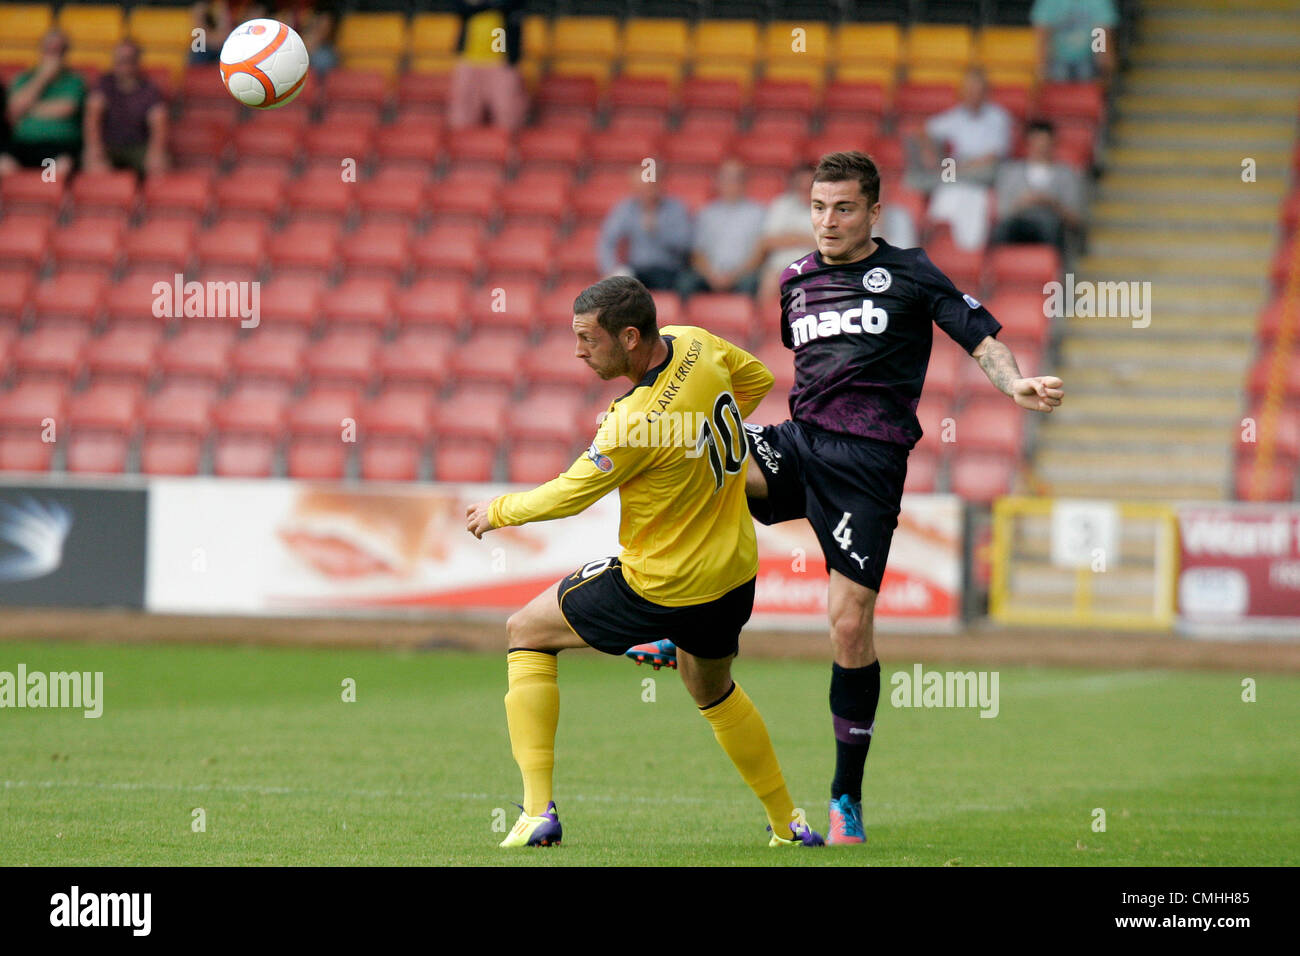 11th Aug 2012. 11.08.2012 Glasgow, Scotland. 4 Paul Paton and 10 Andy Hawarth in action during the Scottish Football - Stock Image